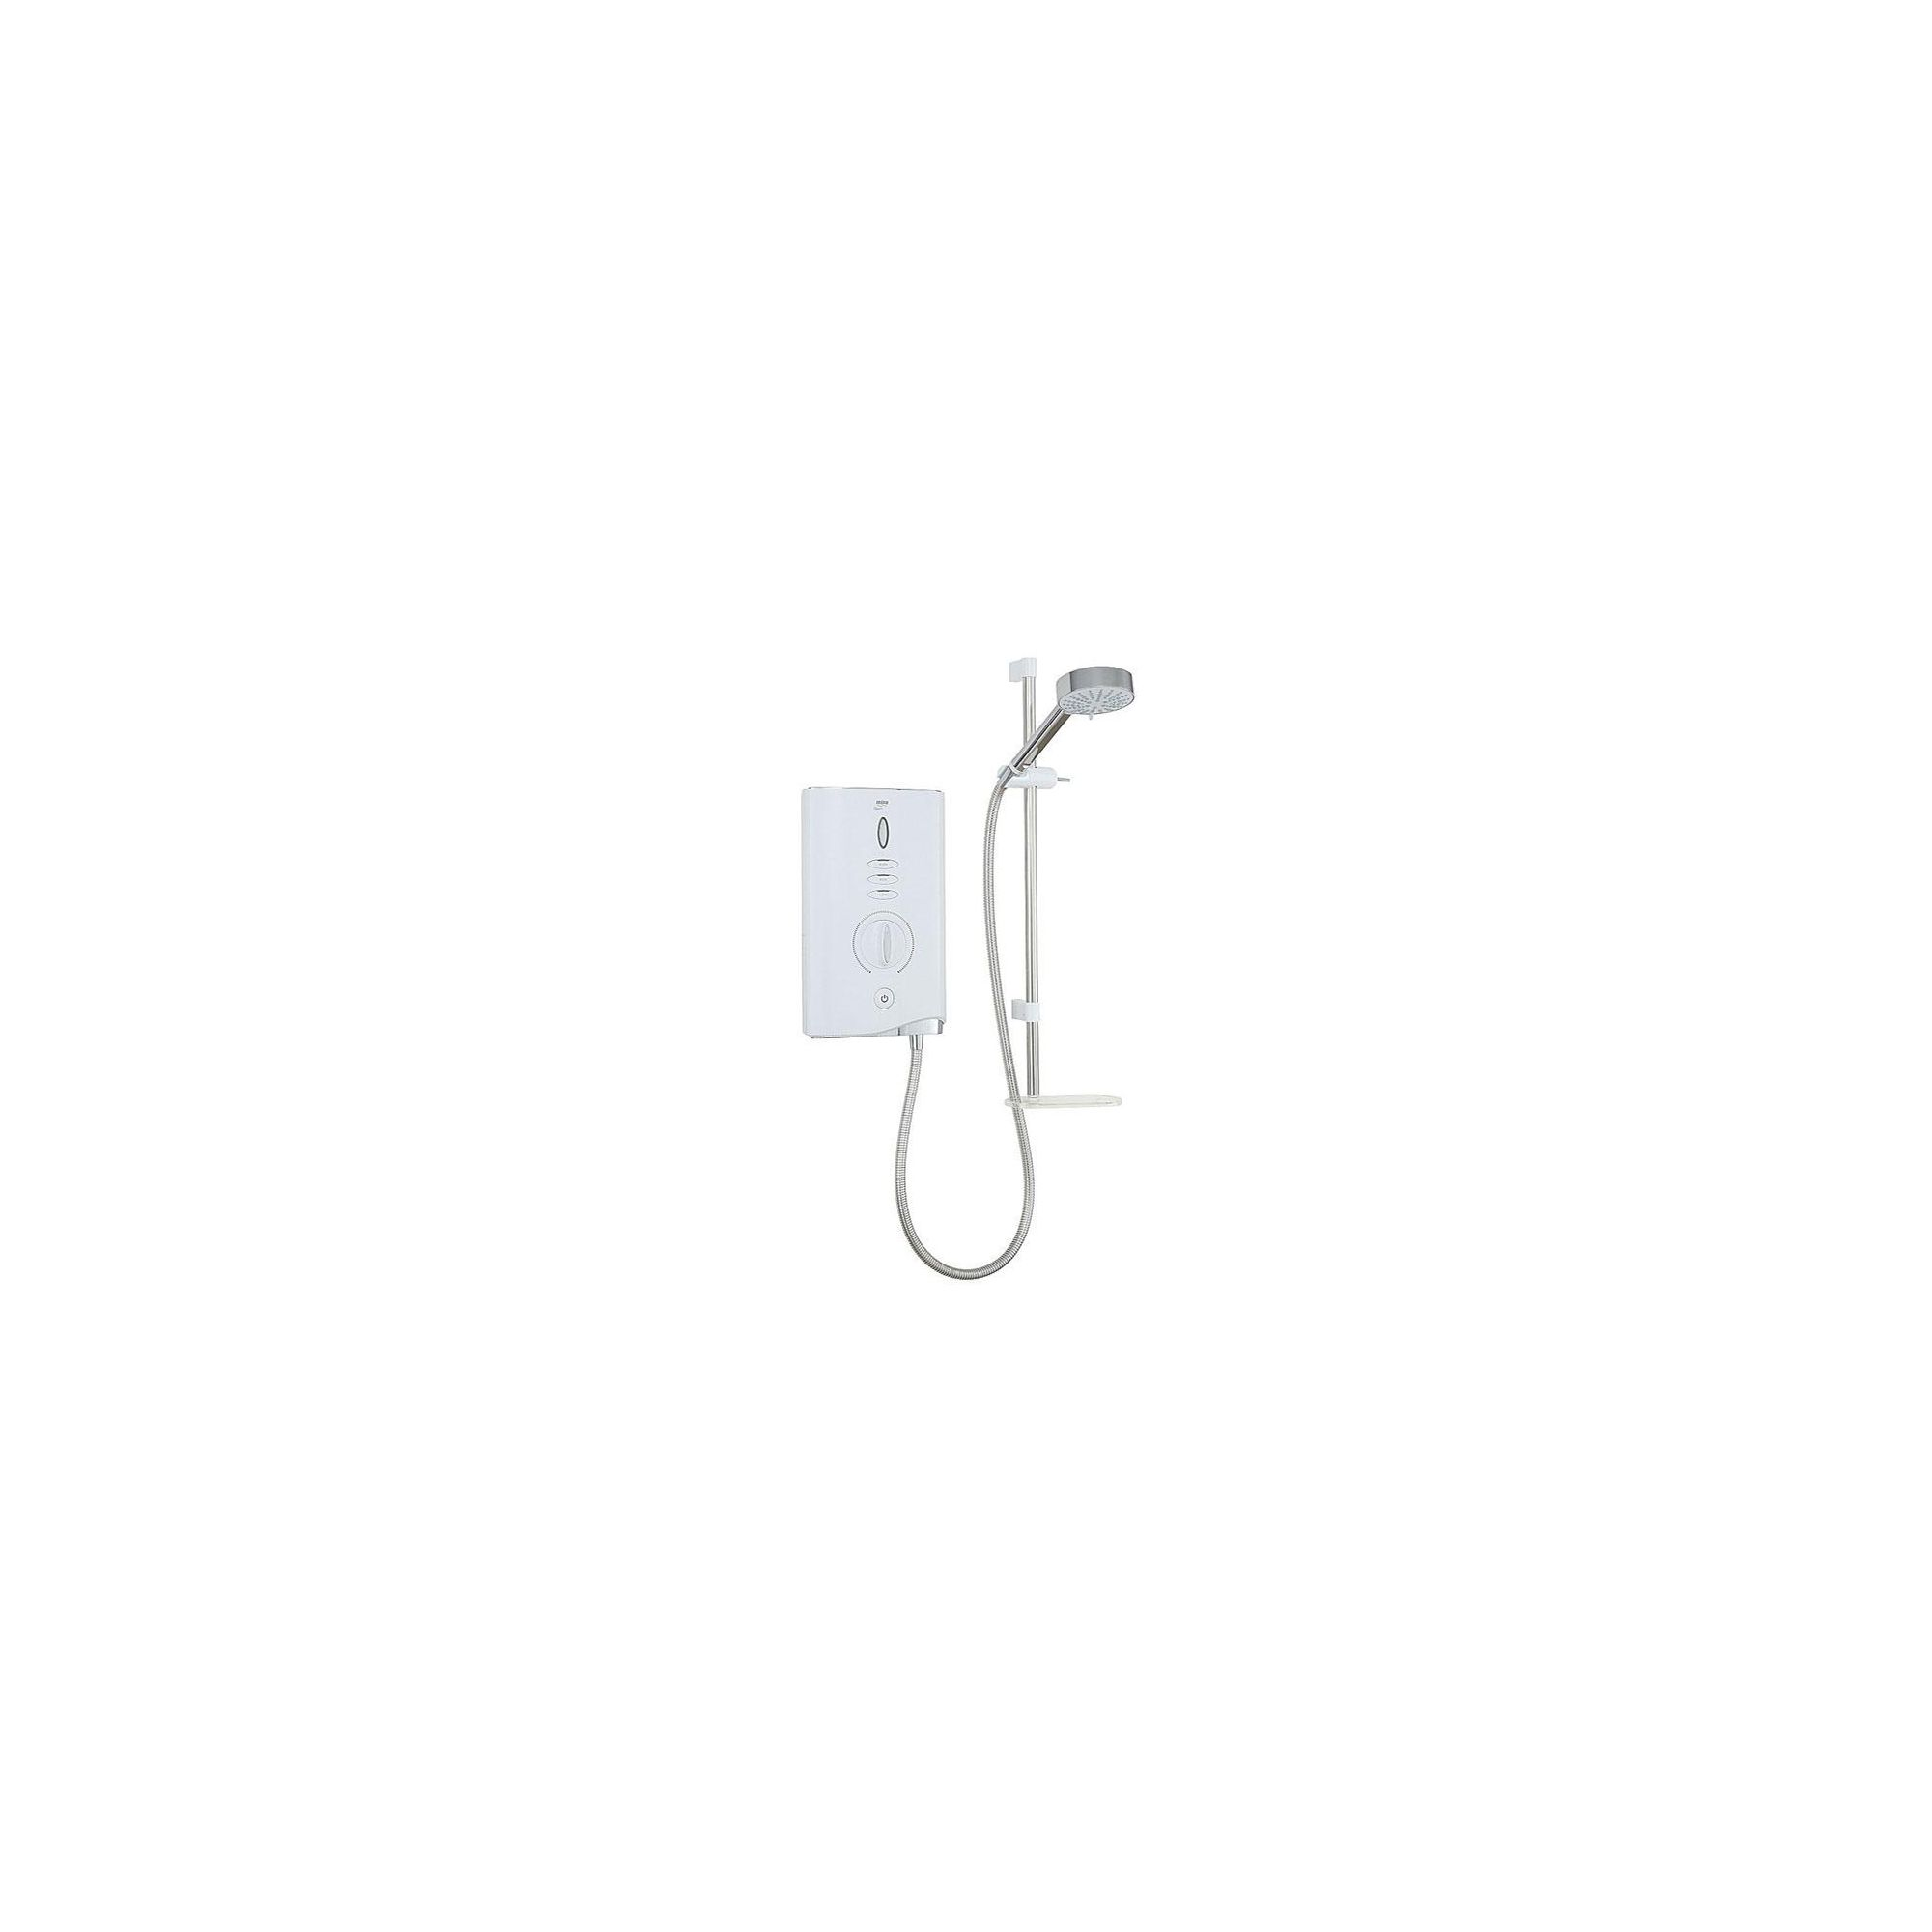 Mira Sport Max Airboost 9.0 kW Electric Shower with 4 Spray Handshower, White/Chrome at Tesco Direct